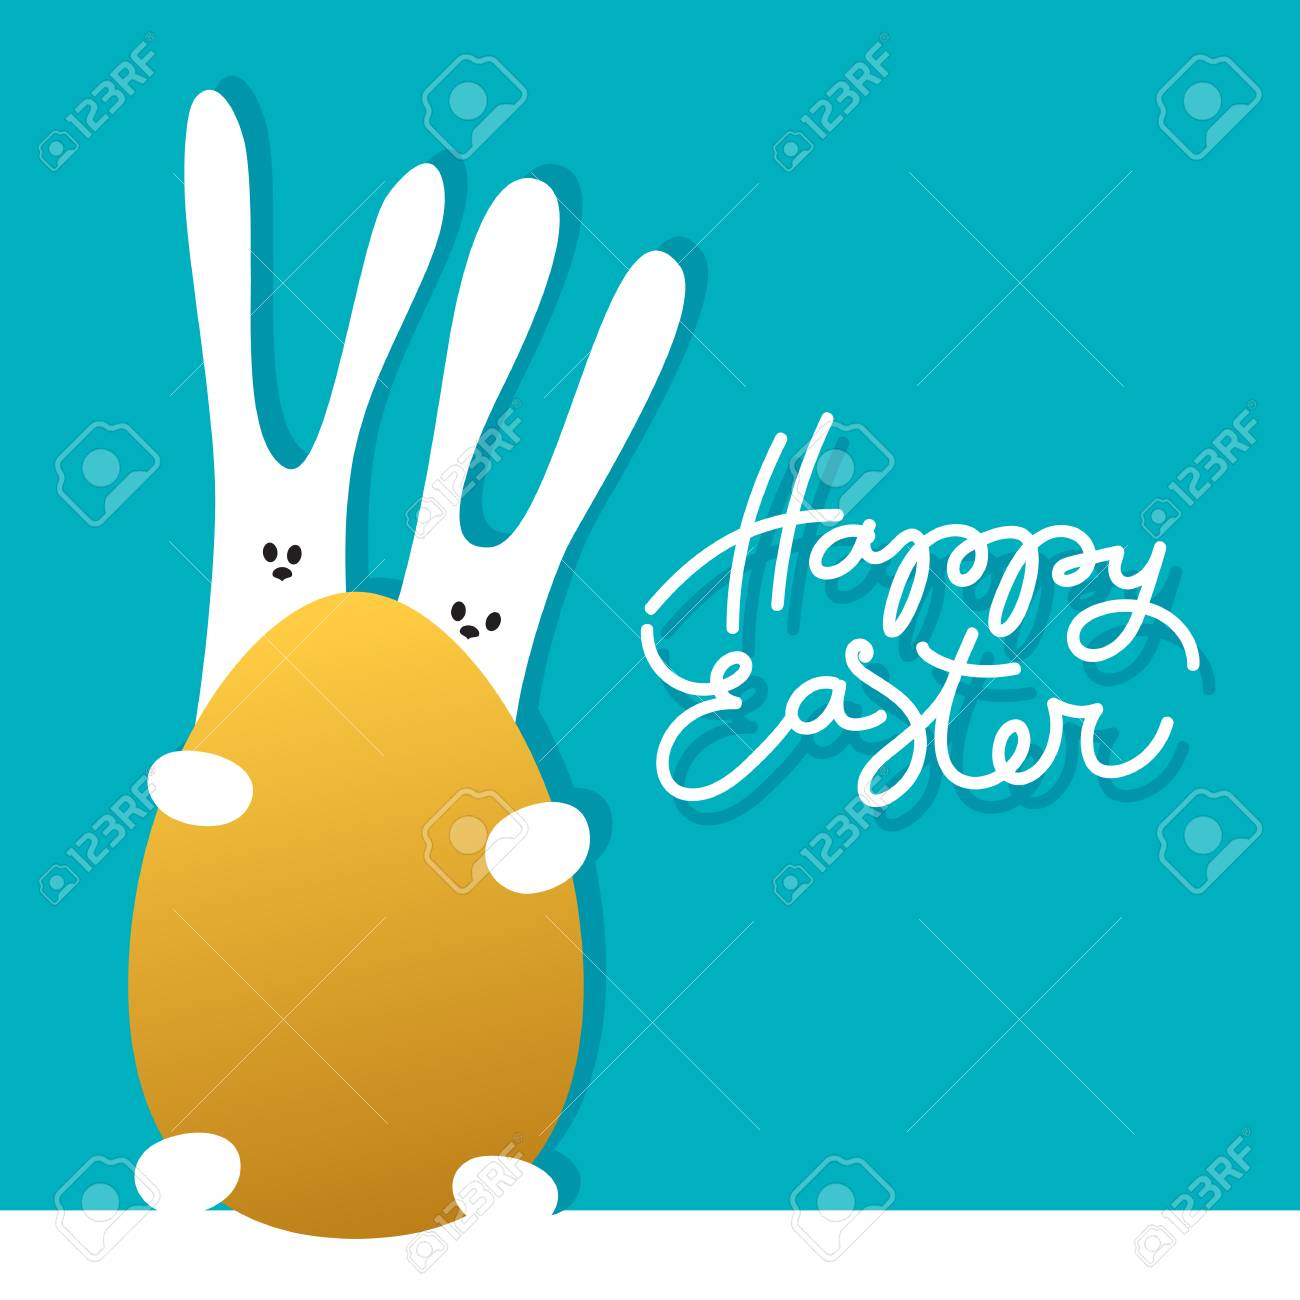 Easter greeting card template with rabbits and golden egg holiday easter greeting card template with rabbits and golden egg holiday background for design card kristyandbryce Image collections